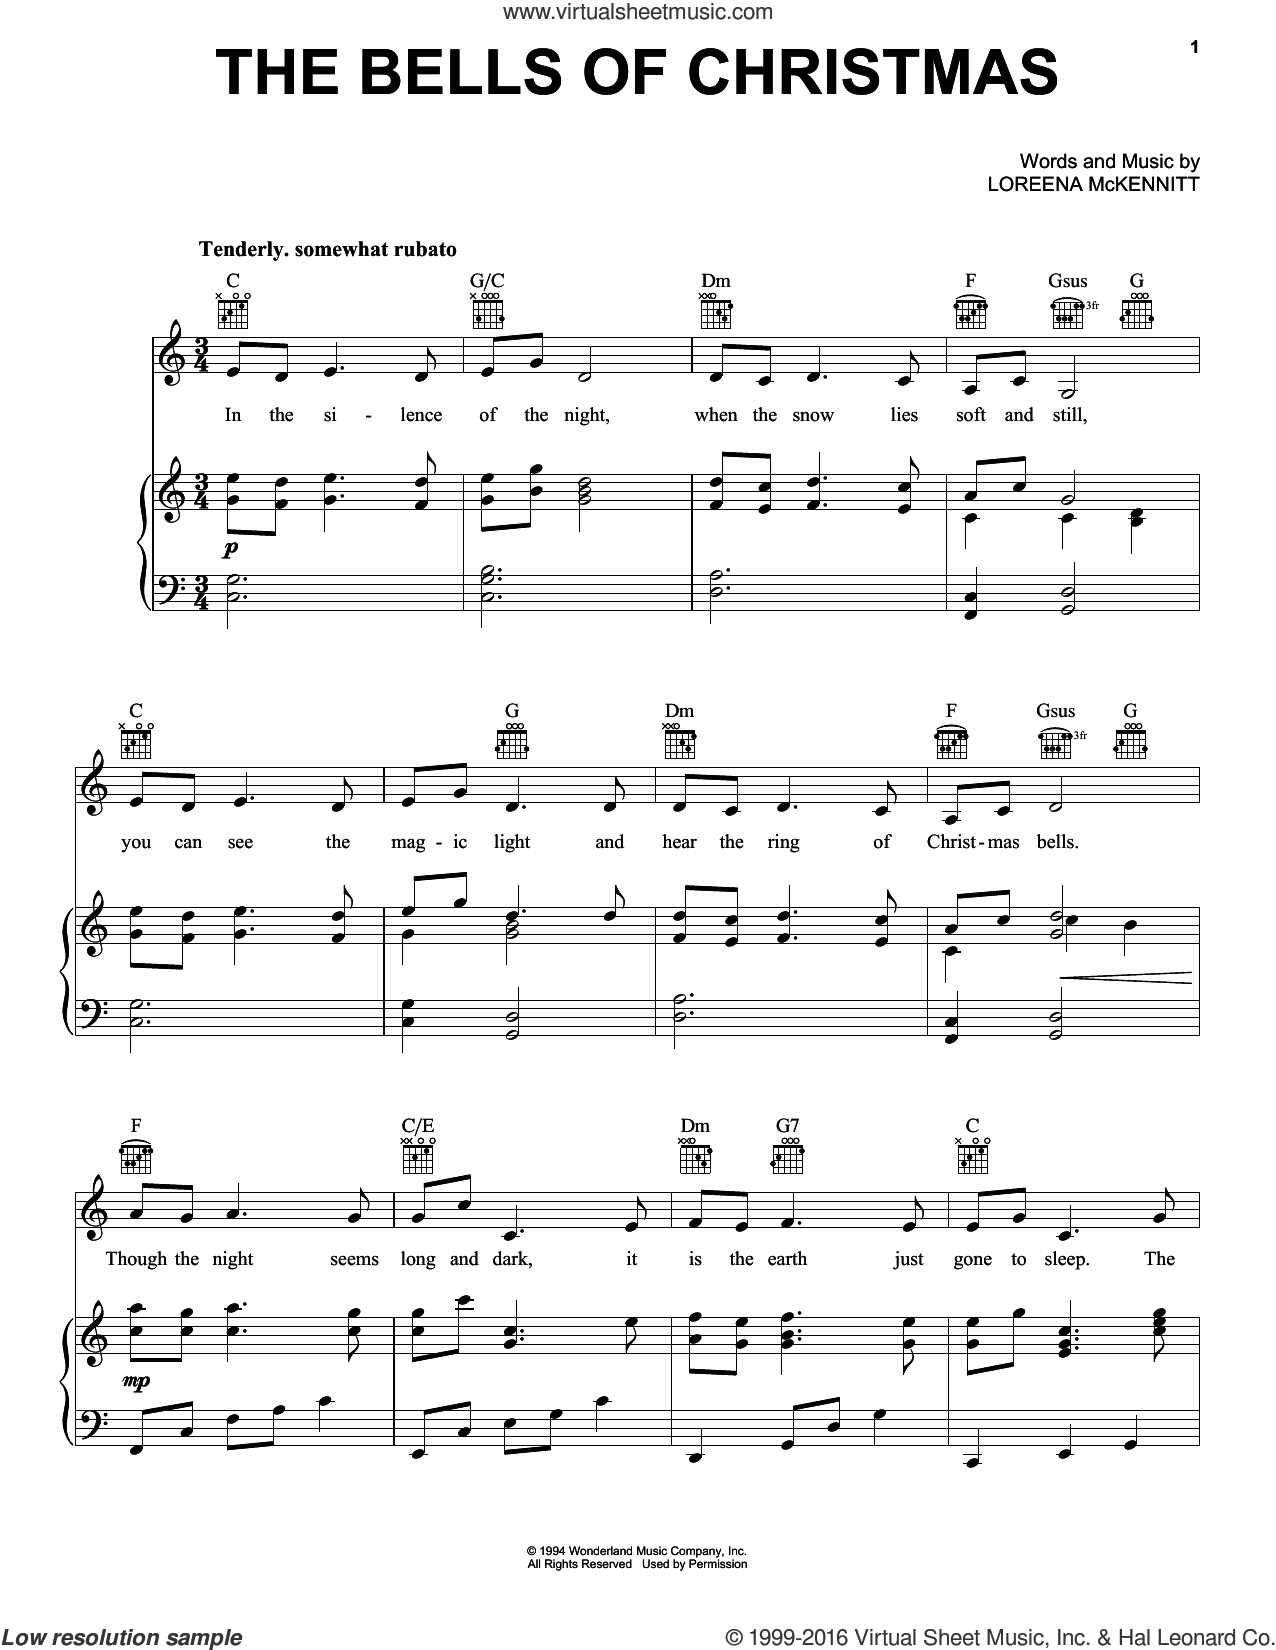 The Bells Of Christmas sheet music for voice, piano or guitar by Loreena McKennitt, intermediate skill level